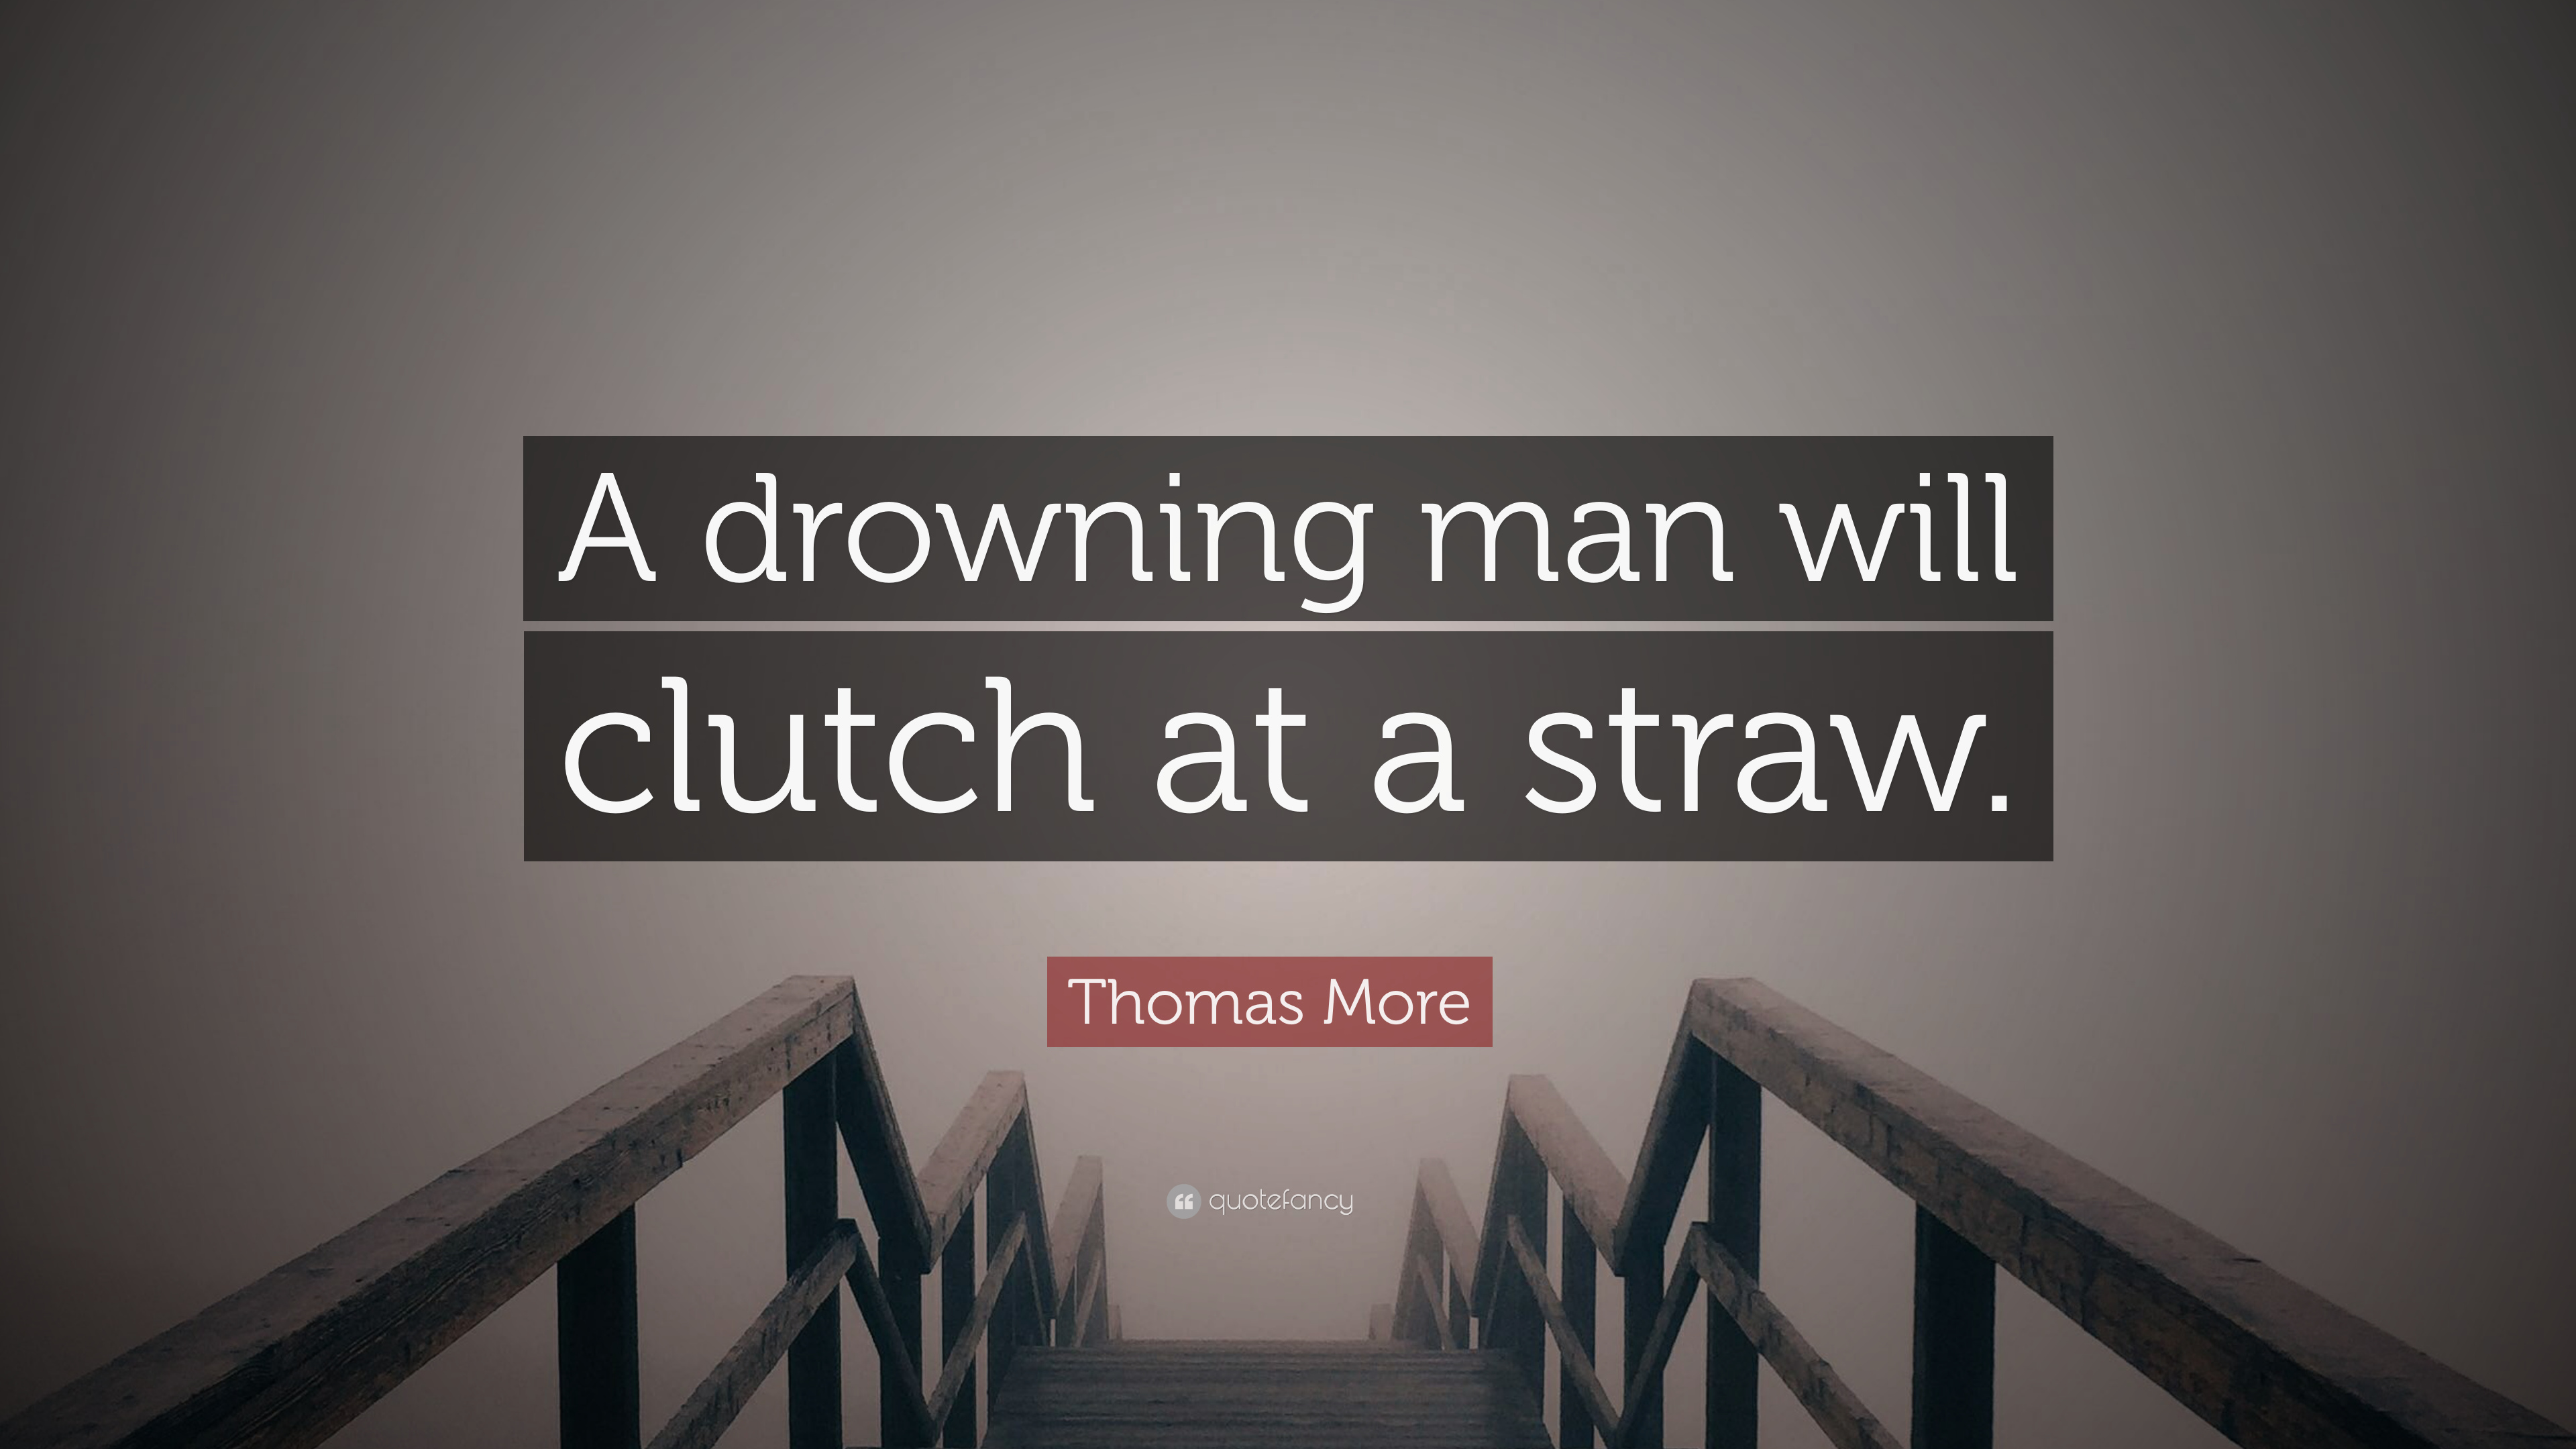 A drowning man catches at a straw.